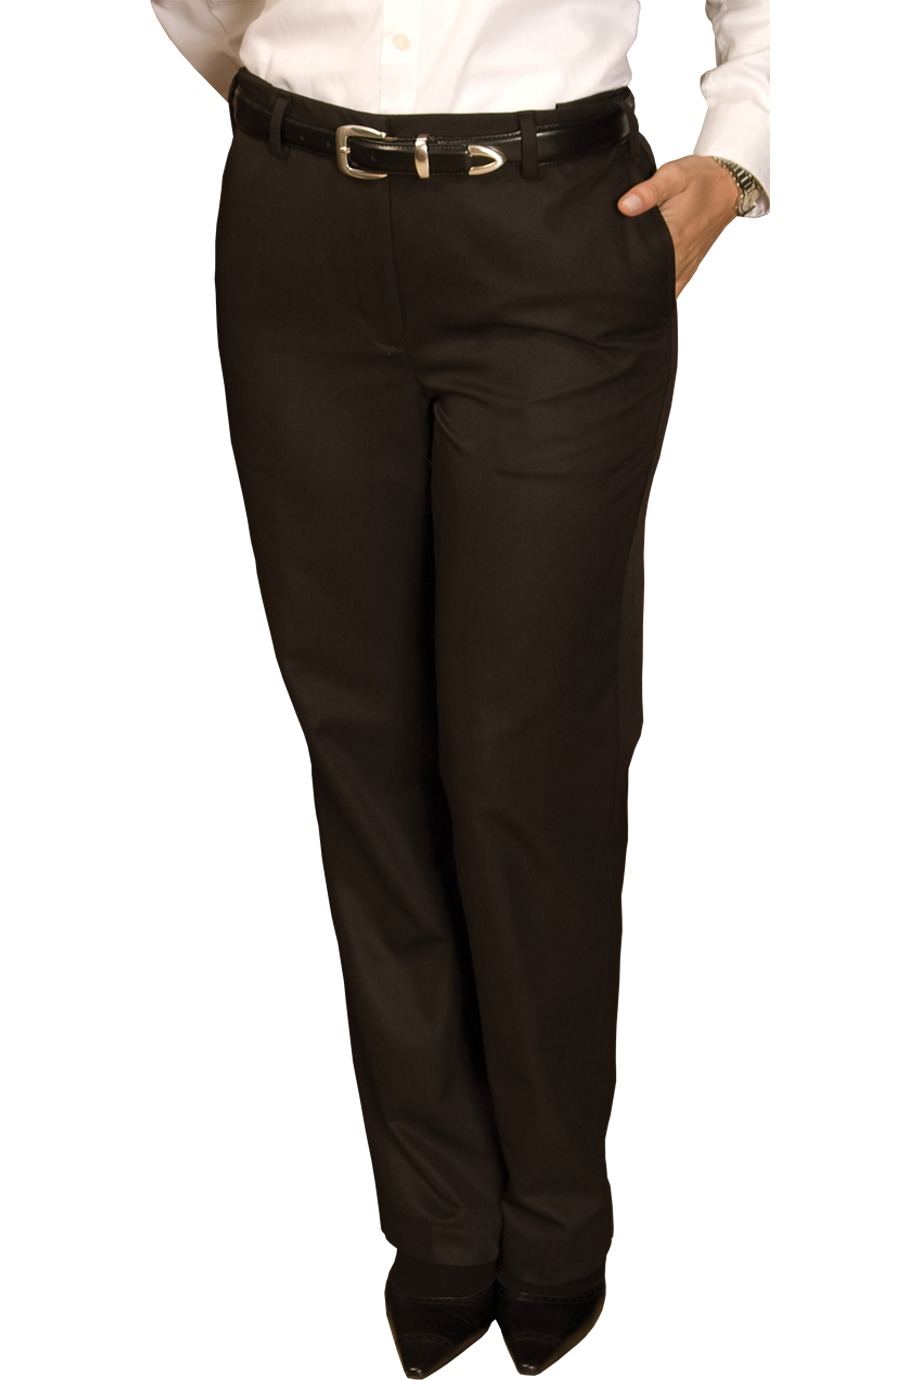 LPFE8579 -  ALL - Ladies Flat Front  Mid Rise Pant